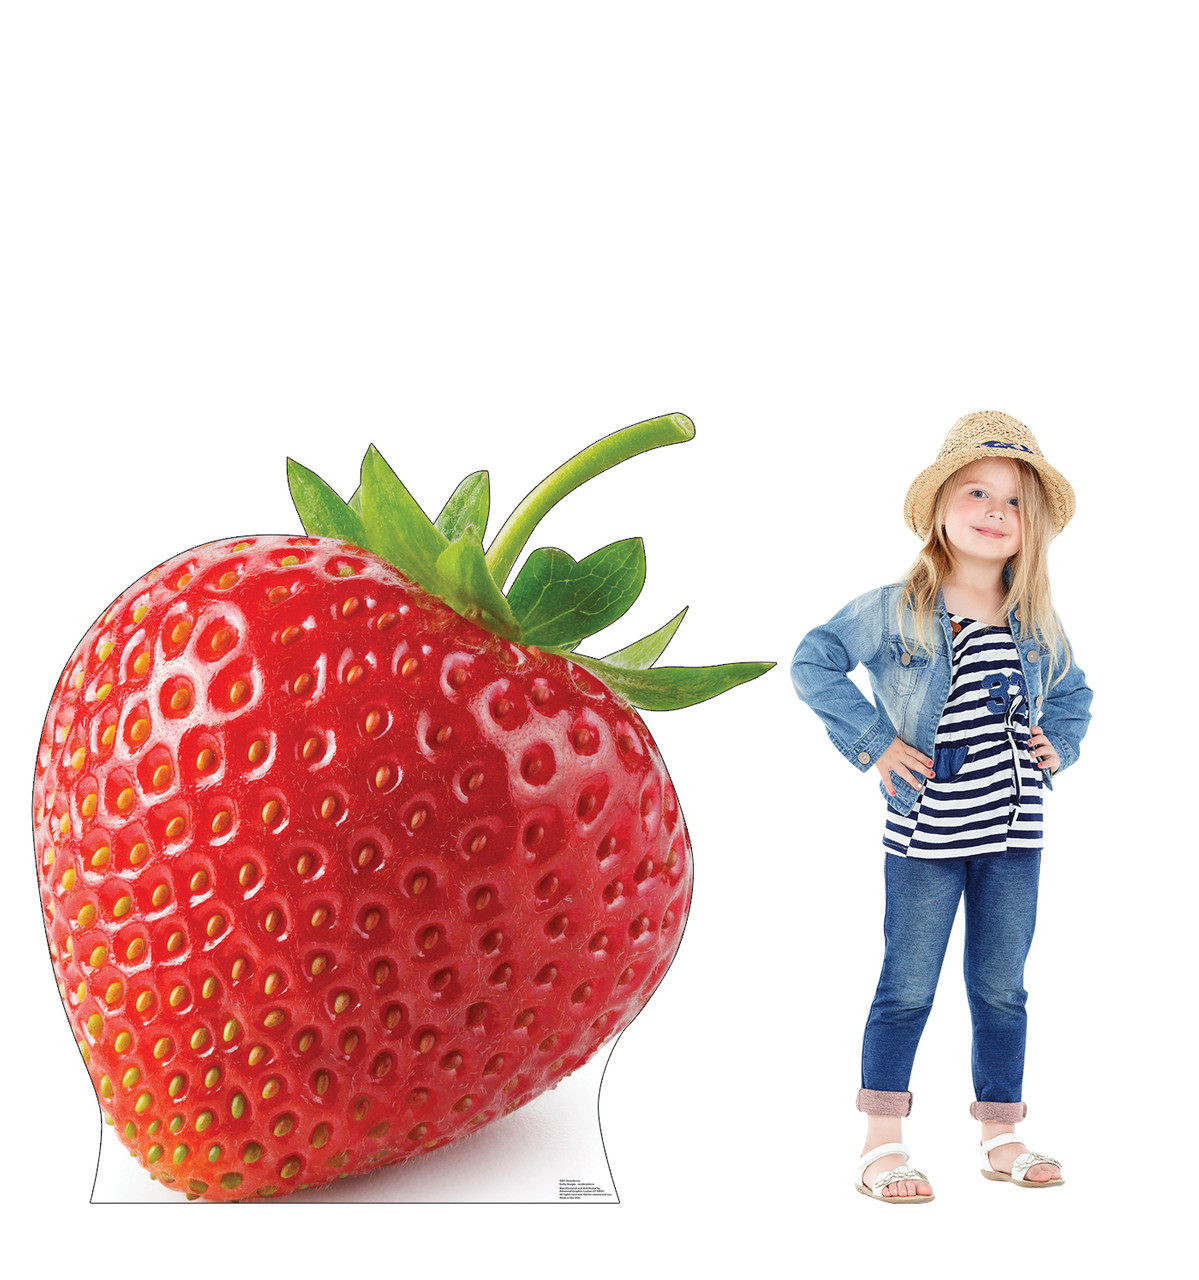 Life-size cardboard standee of a Strawberry Lifesize